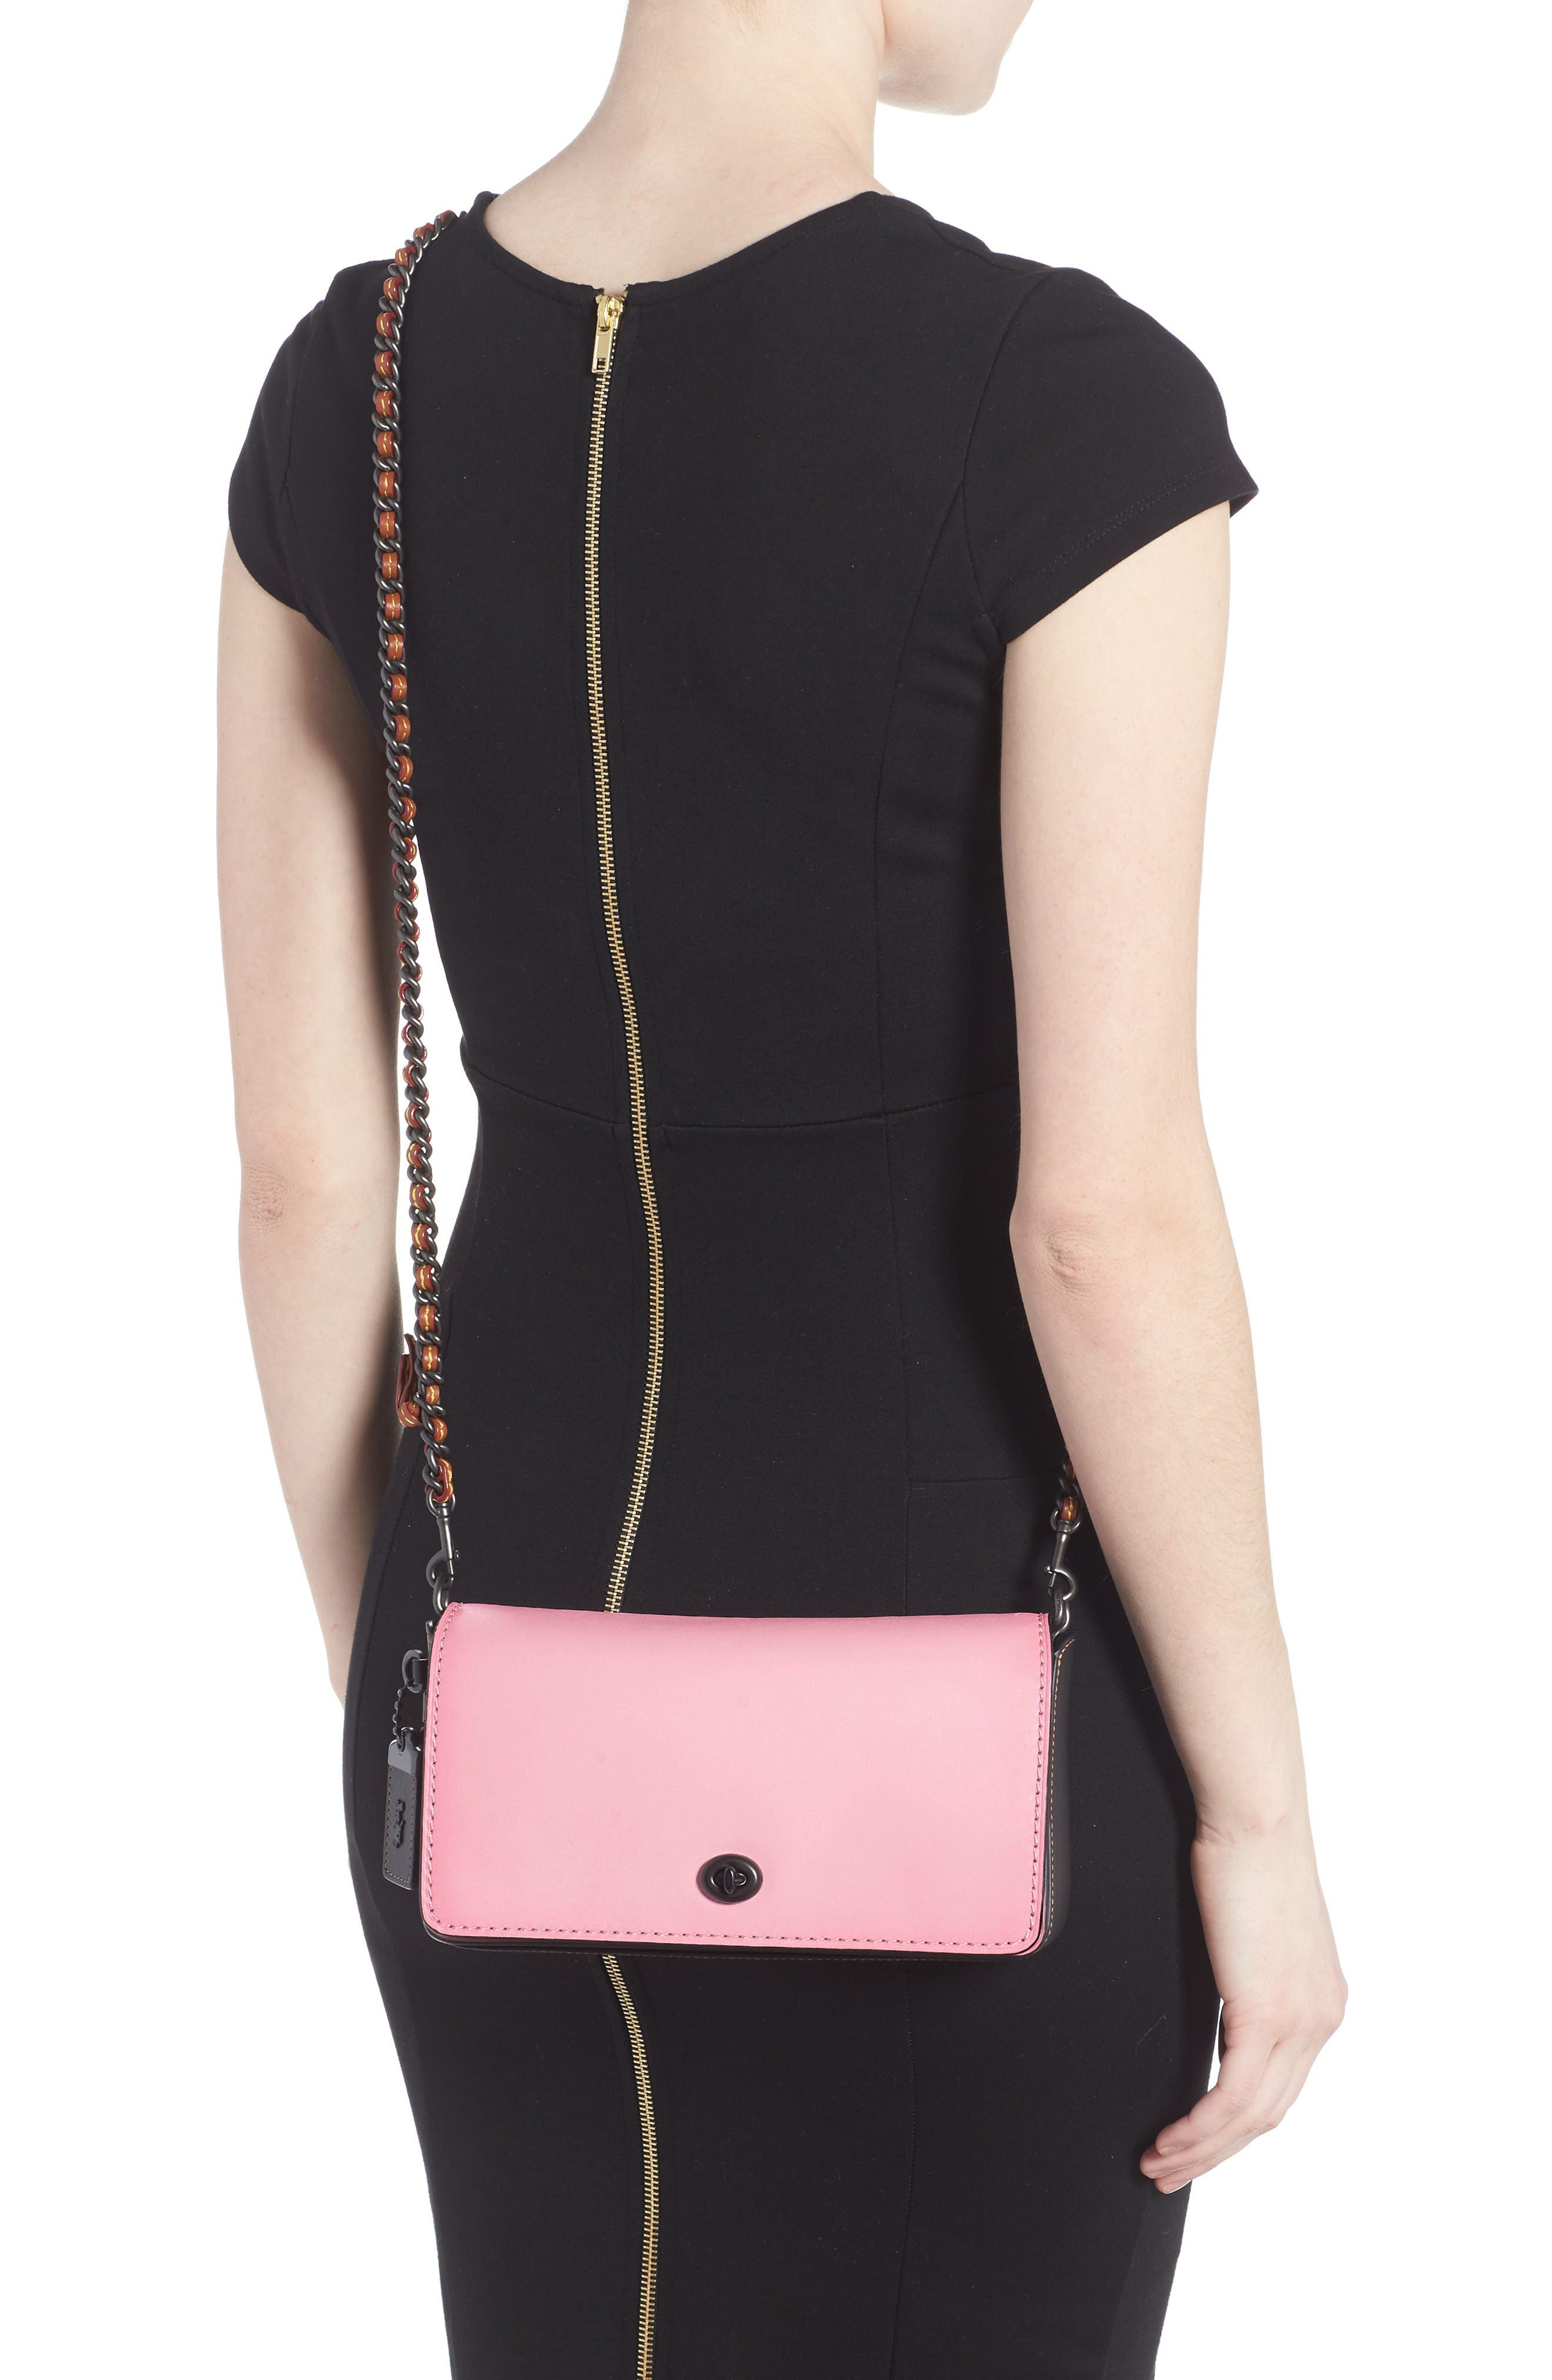 Dinky Leather Crossbody Bag,                             Alternate thumbnail 2, color,                             Petal Black